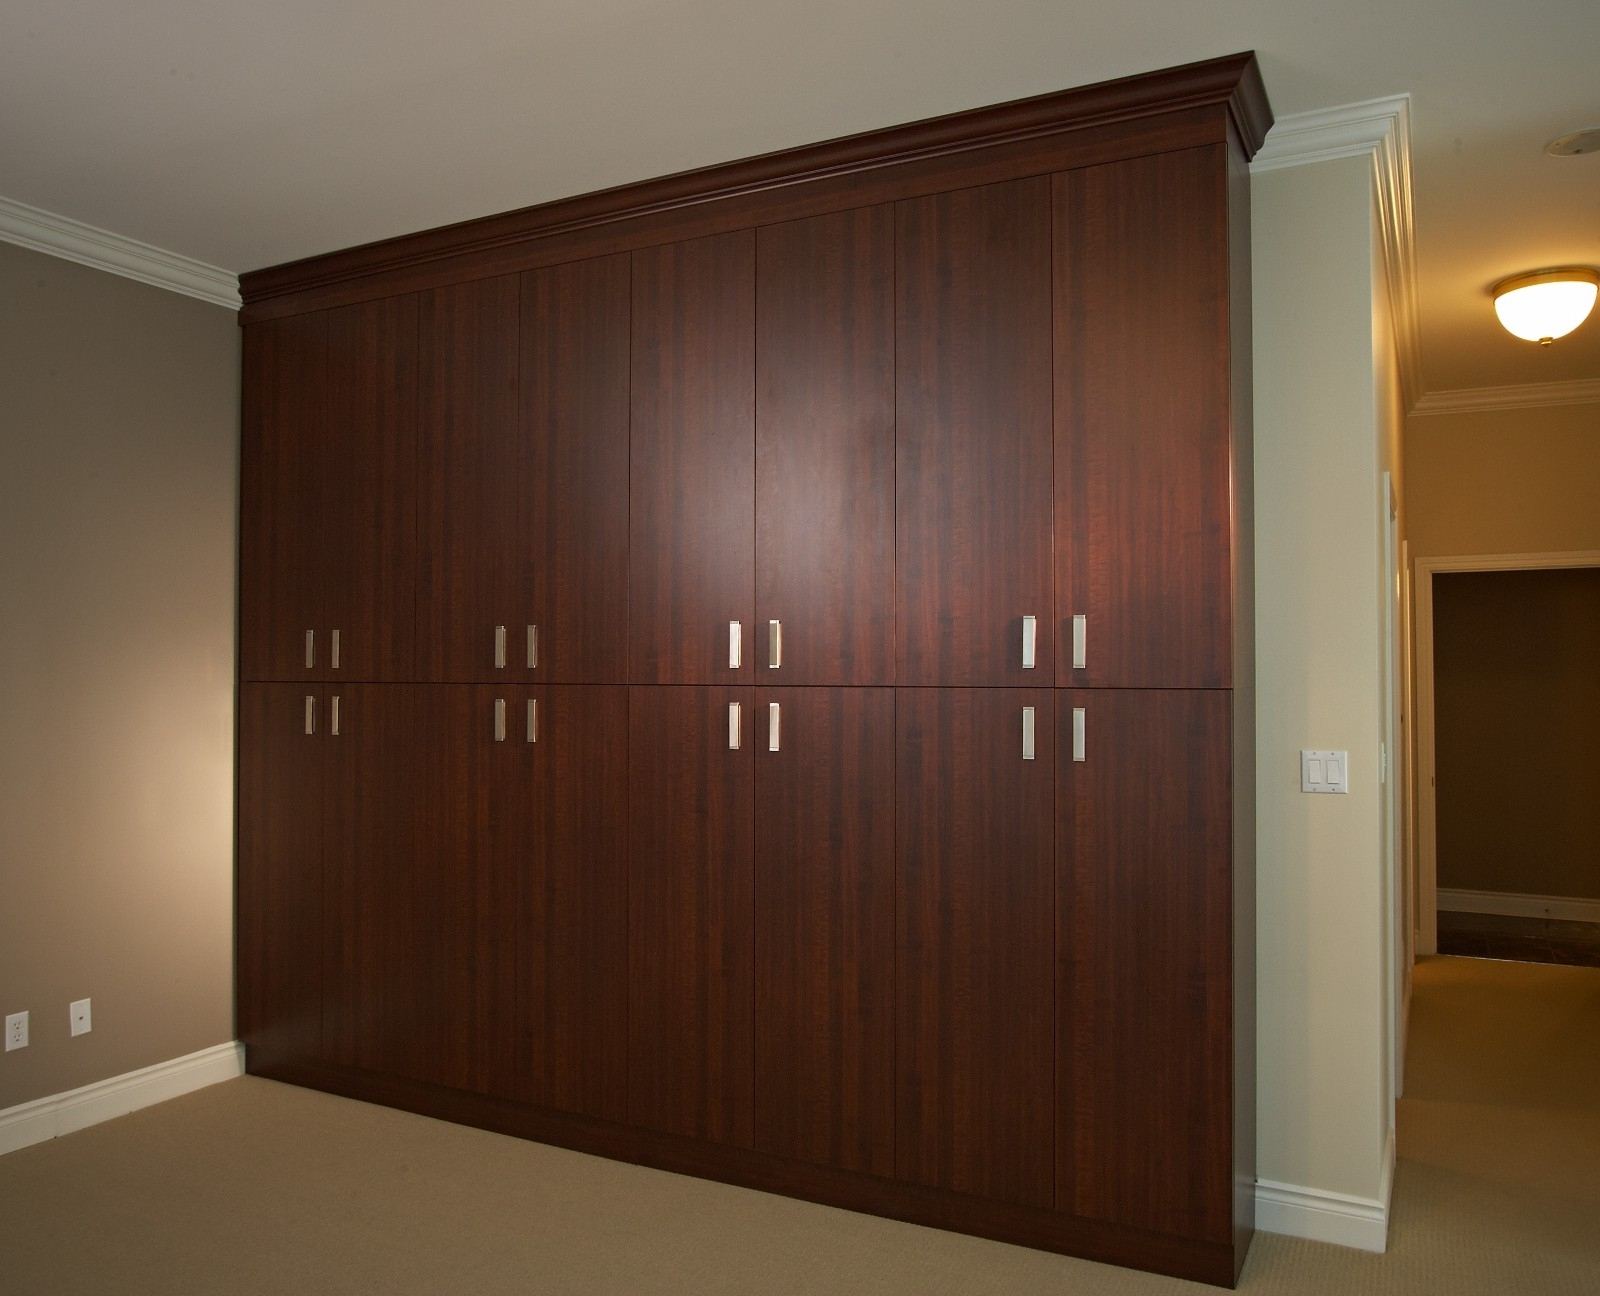 Bedroom : Living Room Tv Cabinet Modern Tv Wall Wall Cabinets For Throughout Most Popular Wall Cupboards (View 8 of 15)